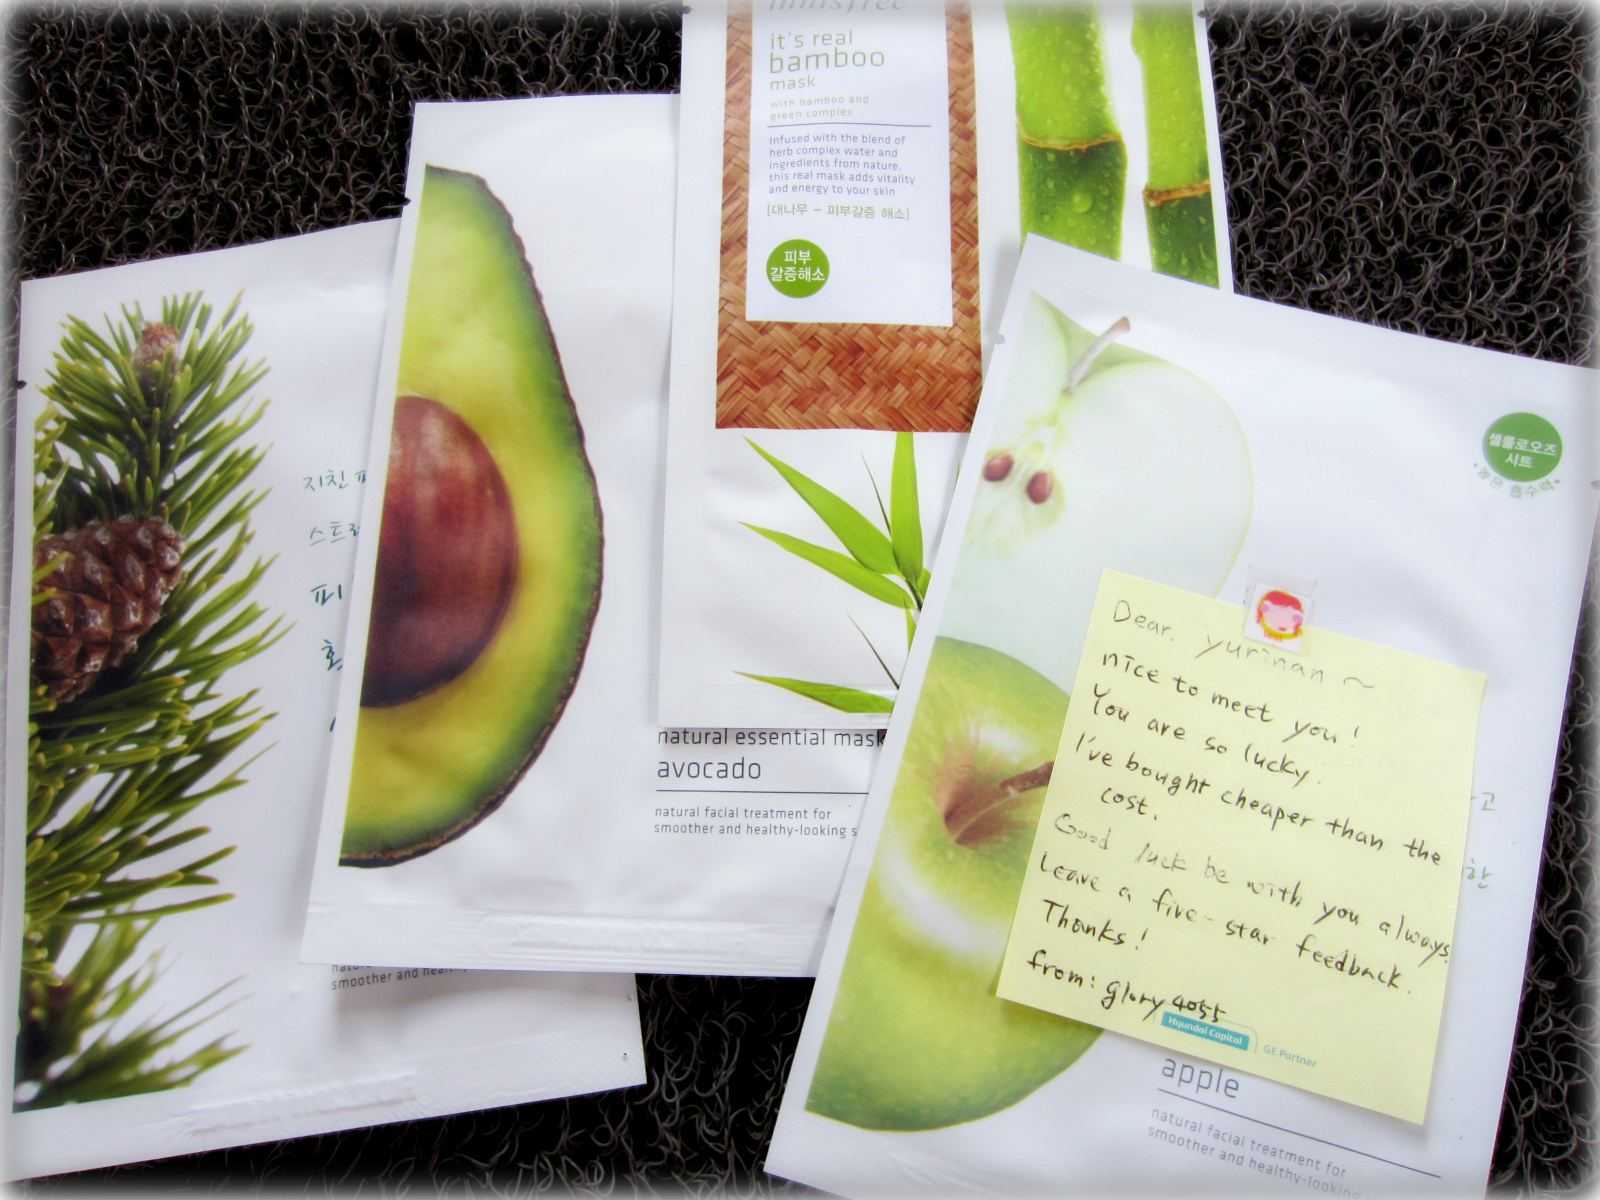 Hauls Freebies February And March 2012 Two Thousand Things Ovale Facial Mask Sachet Tomat One Afternoon I Saw Several Open Bids For Many Varieties Of Innisfree Masks On Ebay Decided To Bid Five Them Thinking That Could At